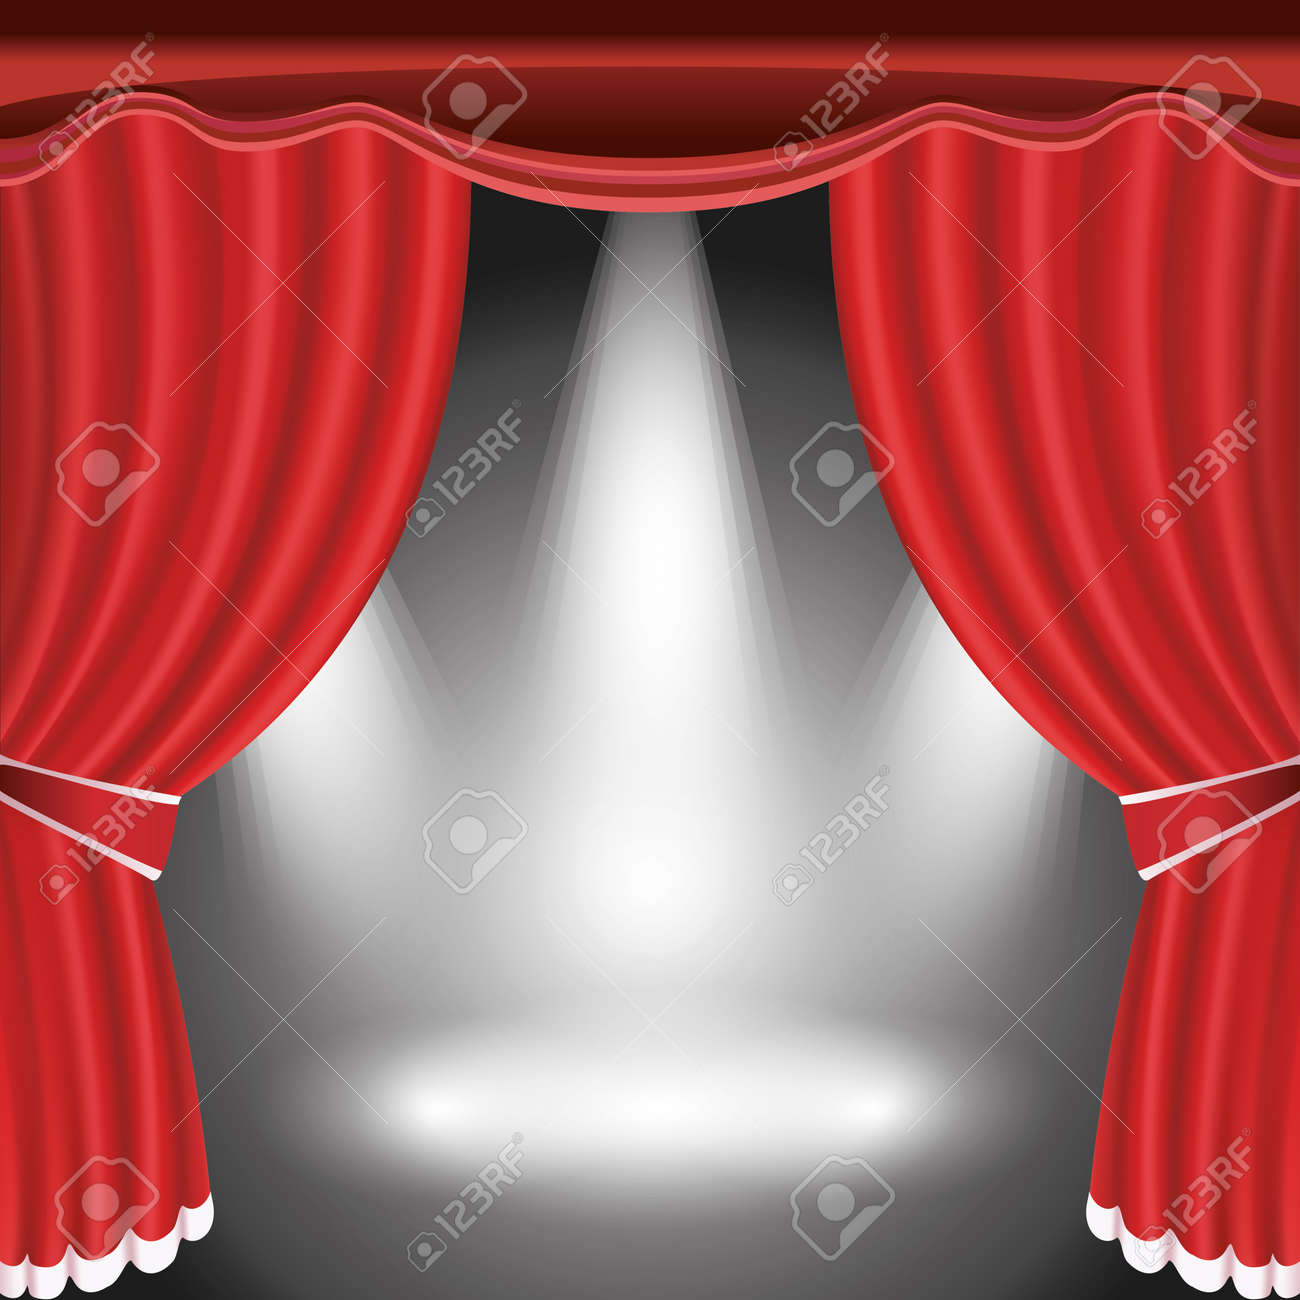 Red curtain spotlight - Theater Stage With Open Red Curtain And Three Spotlight Illustration Stock Vector 14844814